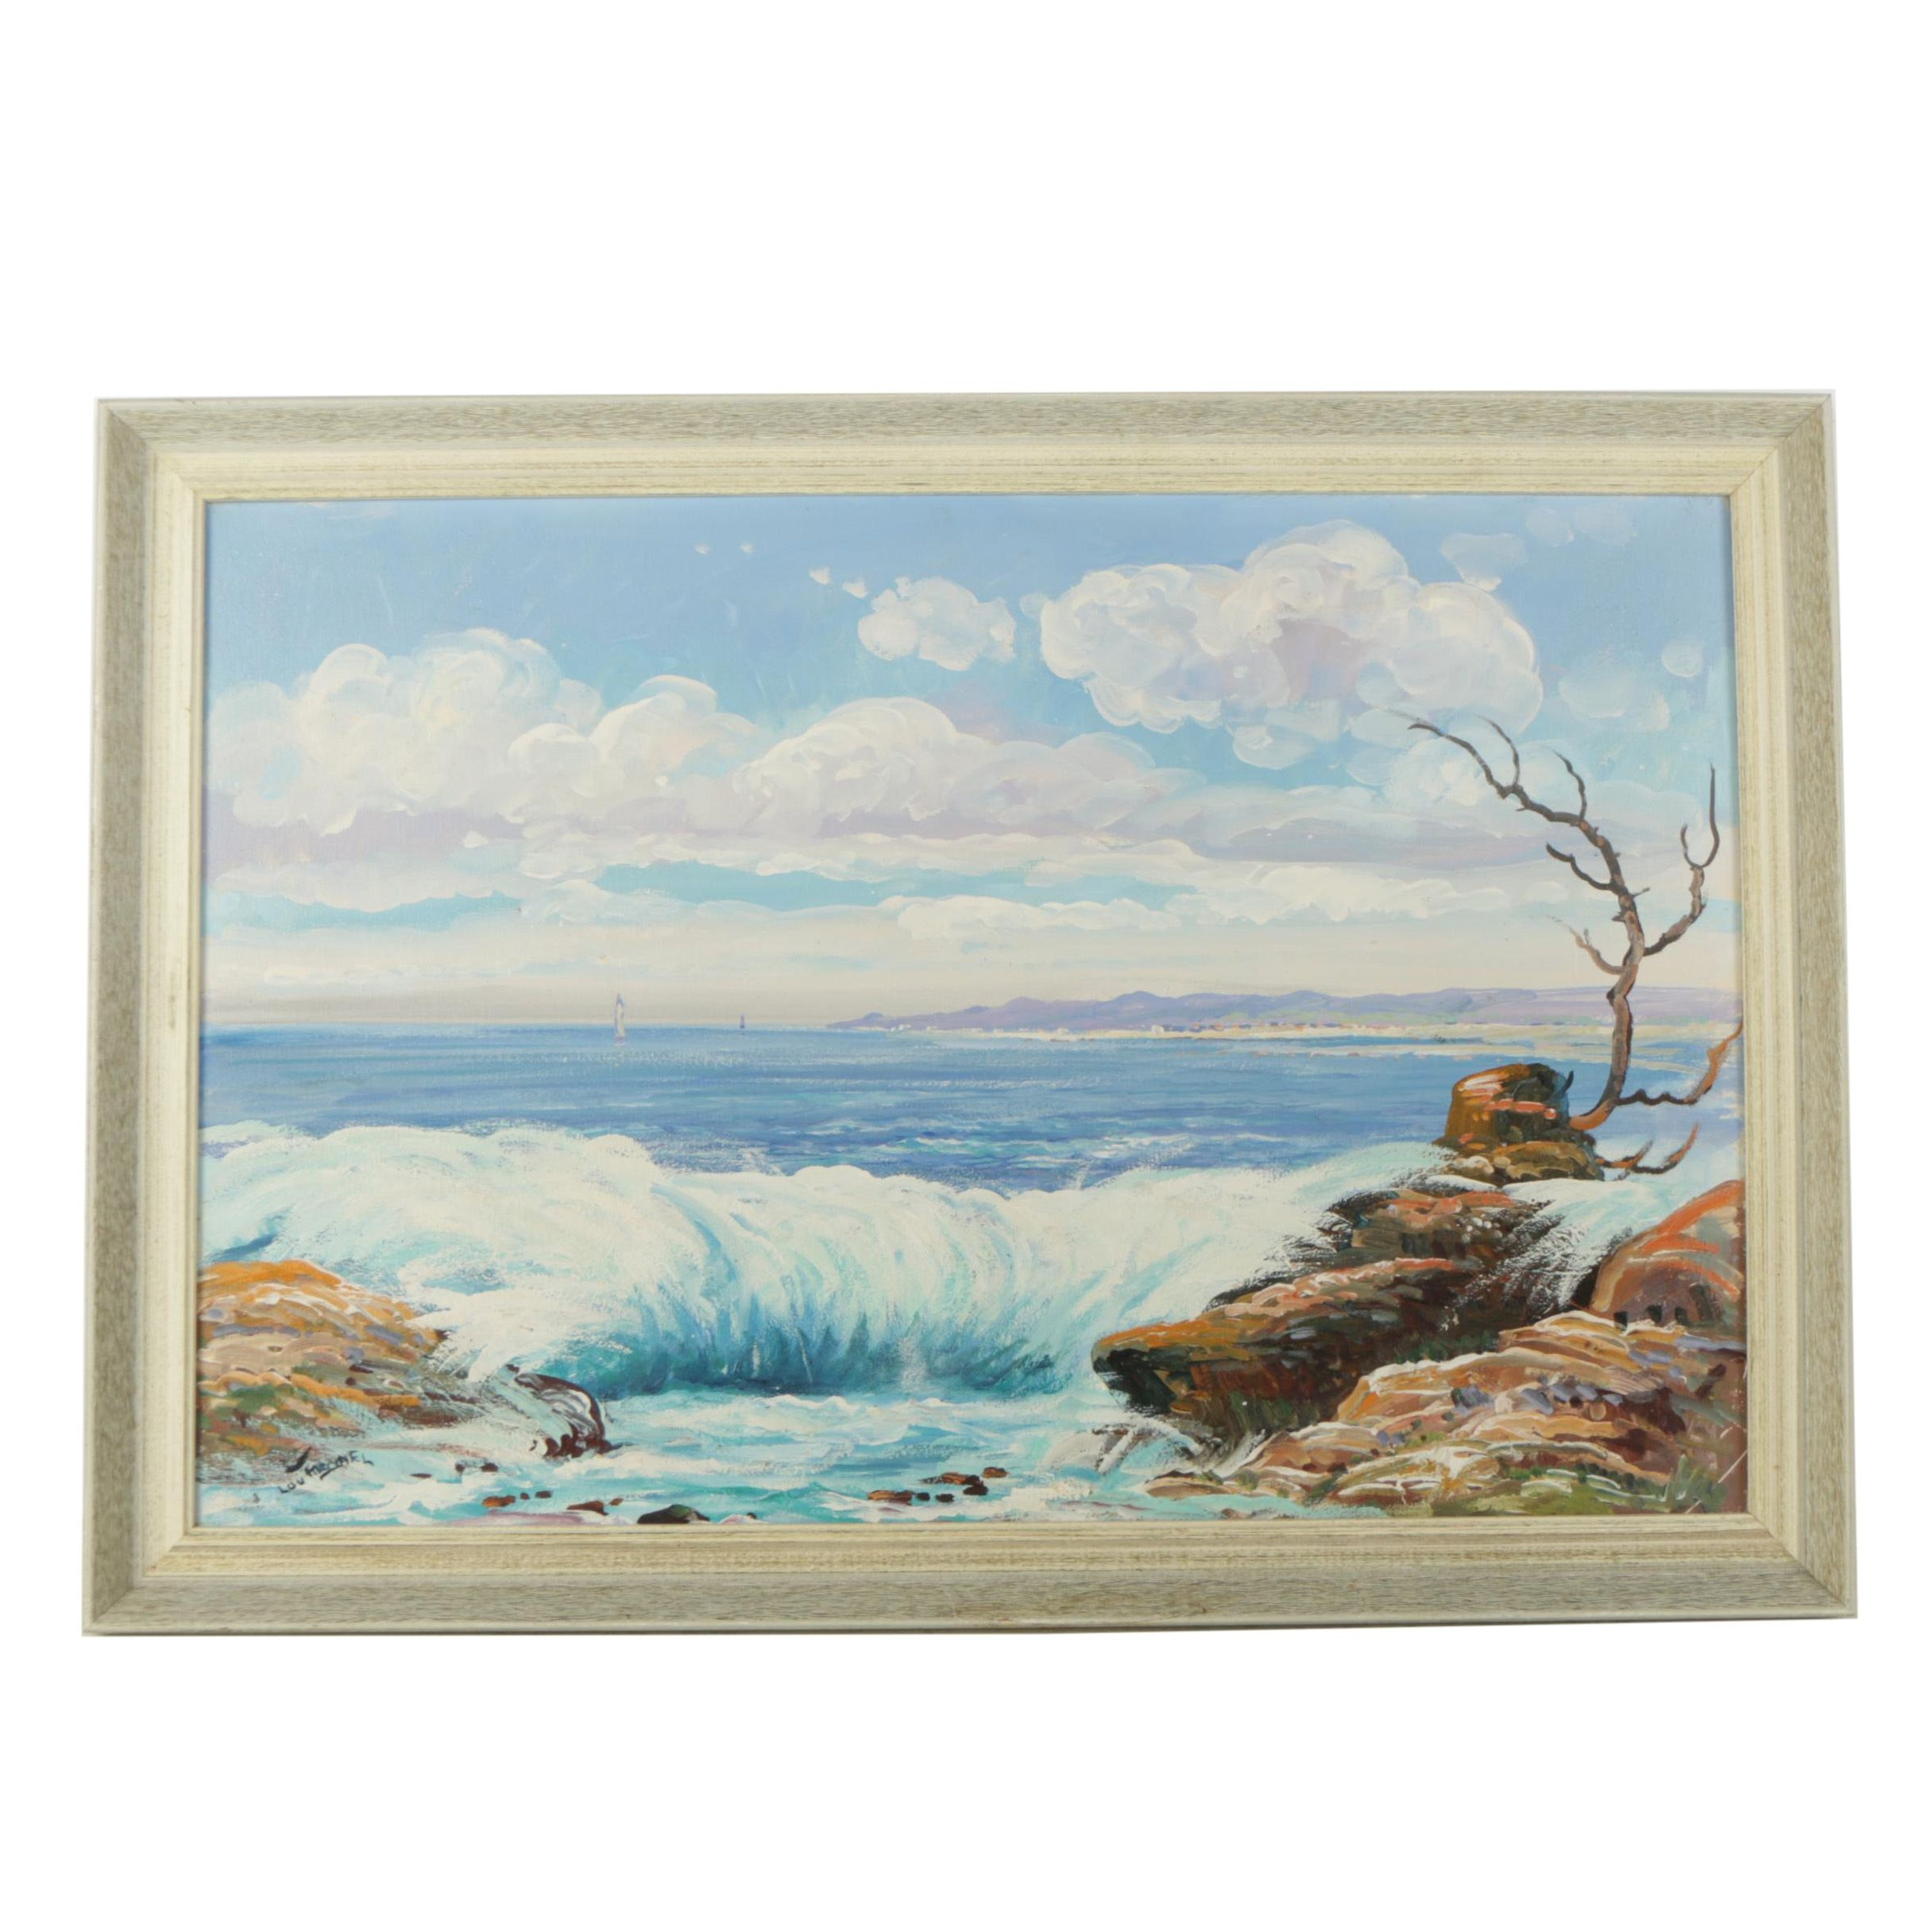 Lou Meonel Oil Painting of a Beach Scene